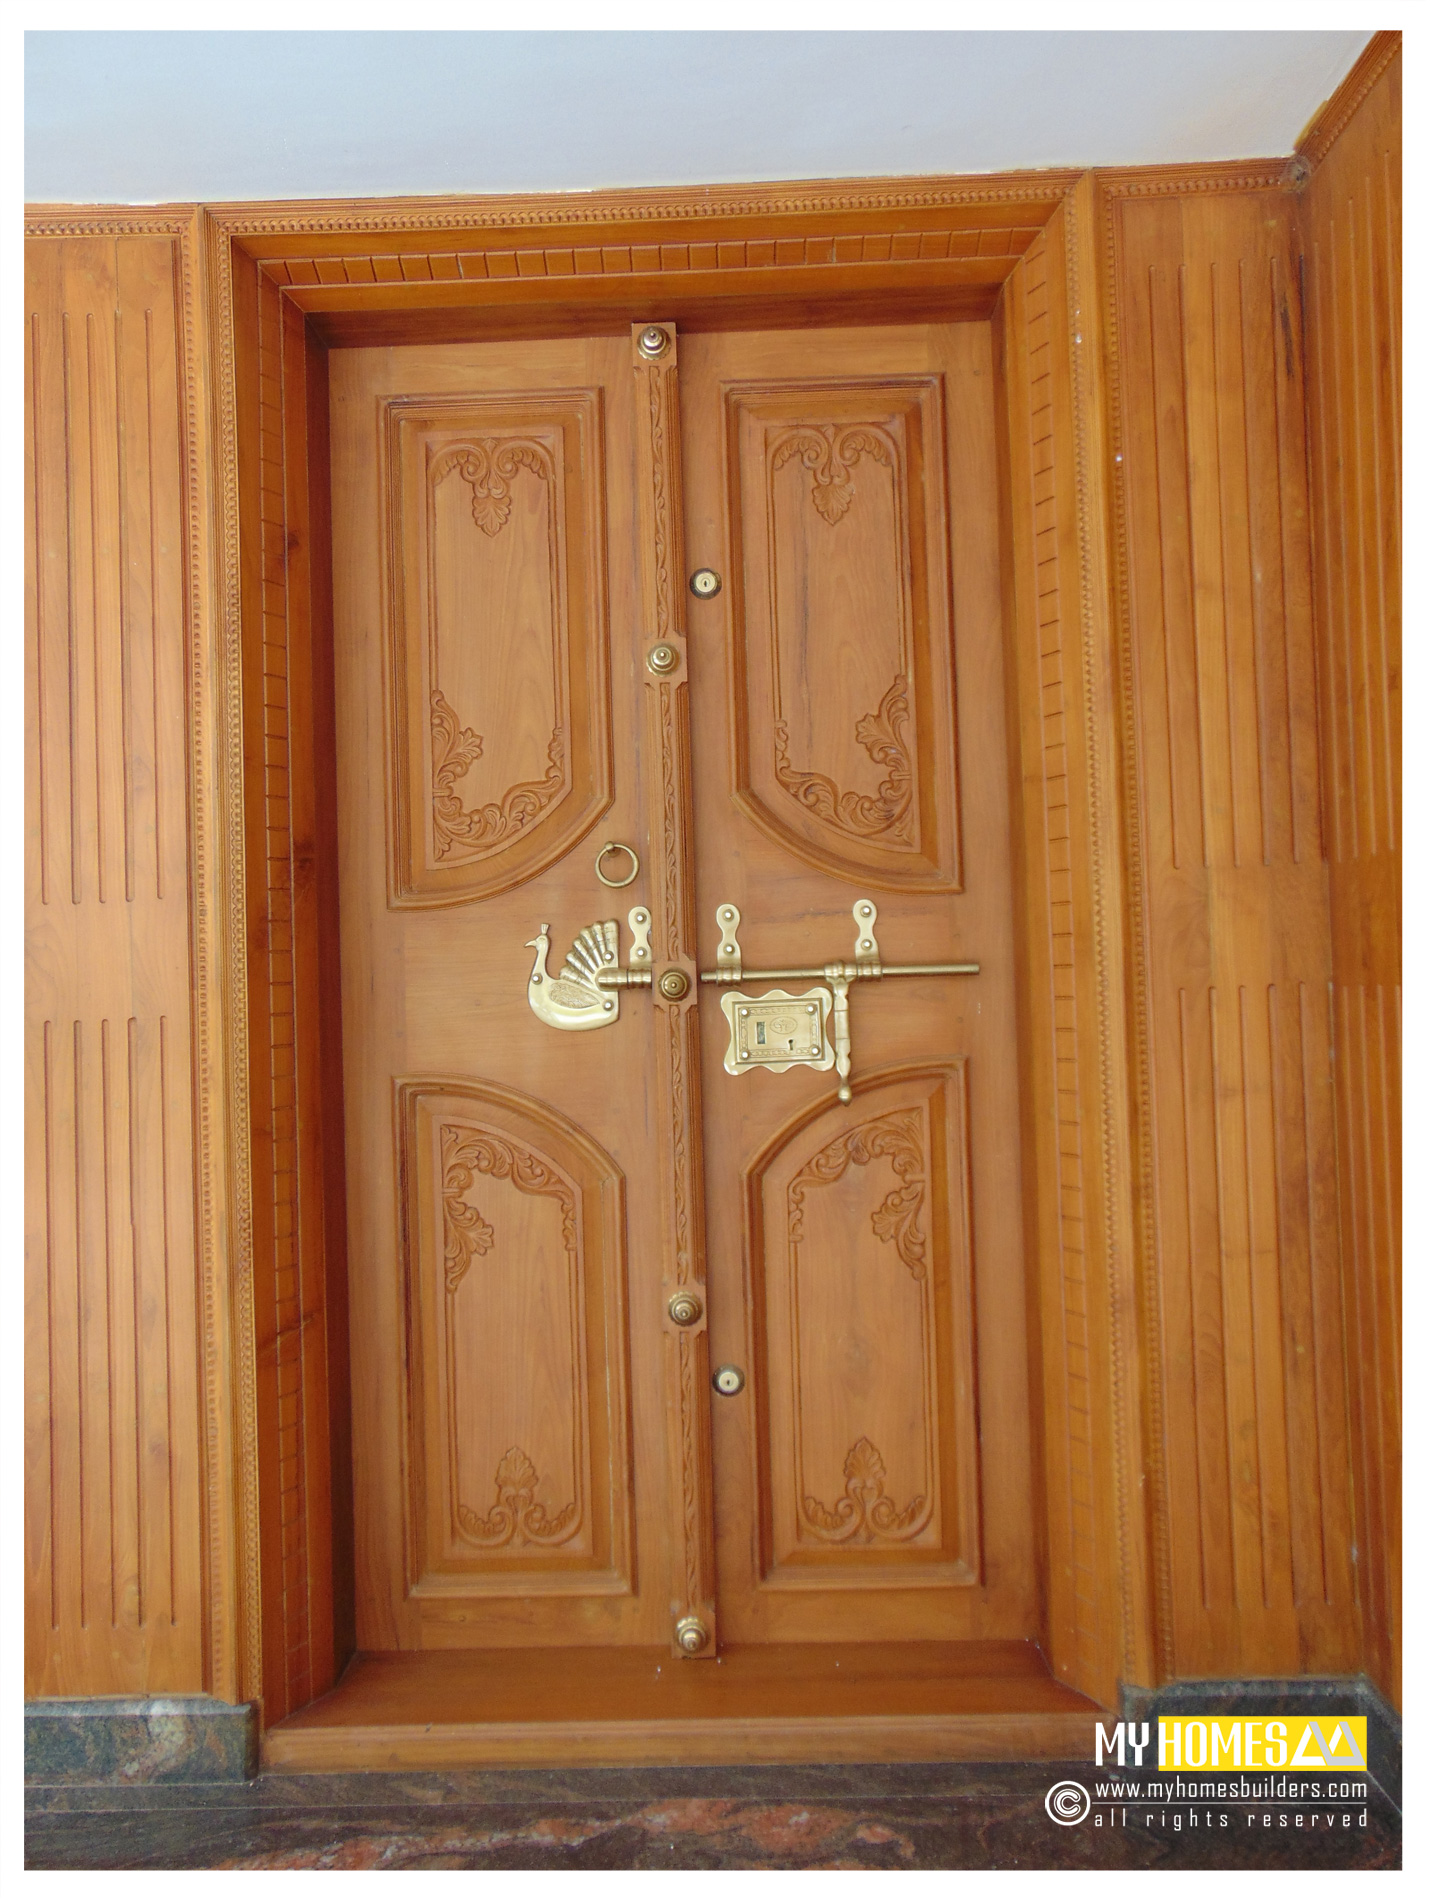 New idea for homes main door designs in kerala india for Home entry doors